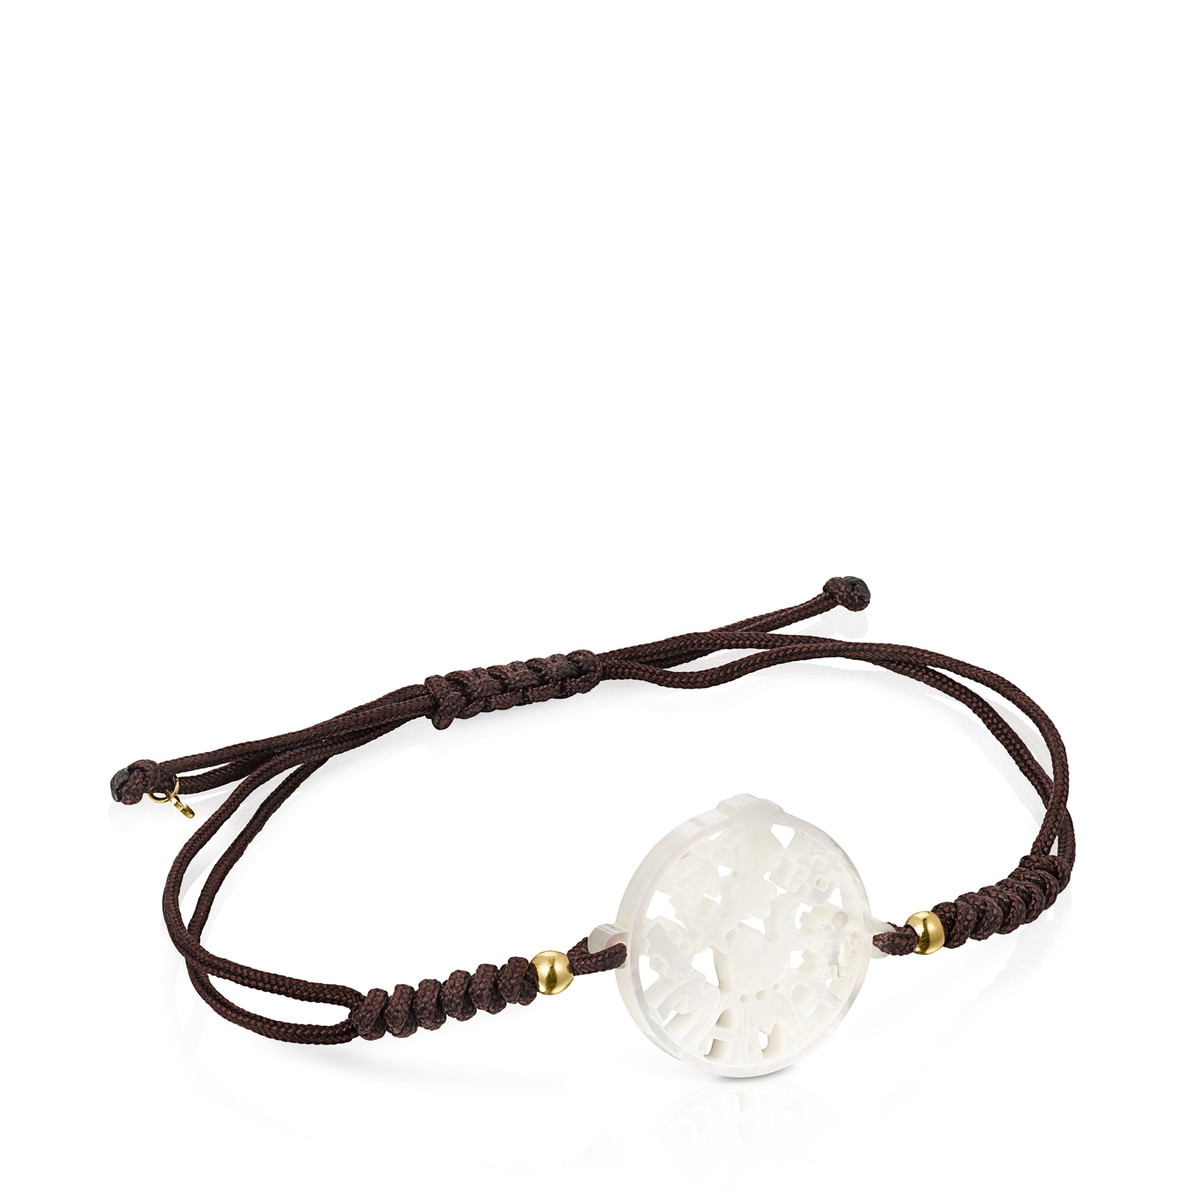 TOUS Mama Bracelet in Gold and Mother-of-pearl with brown cord